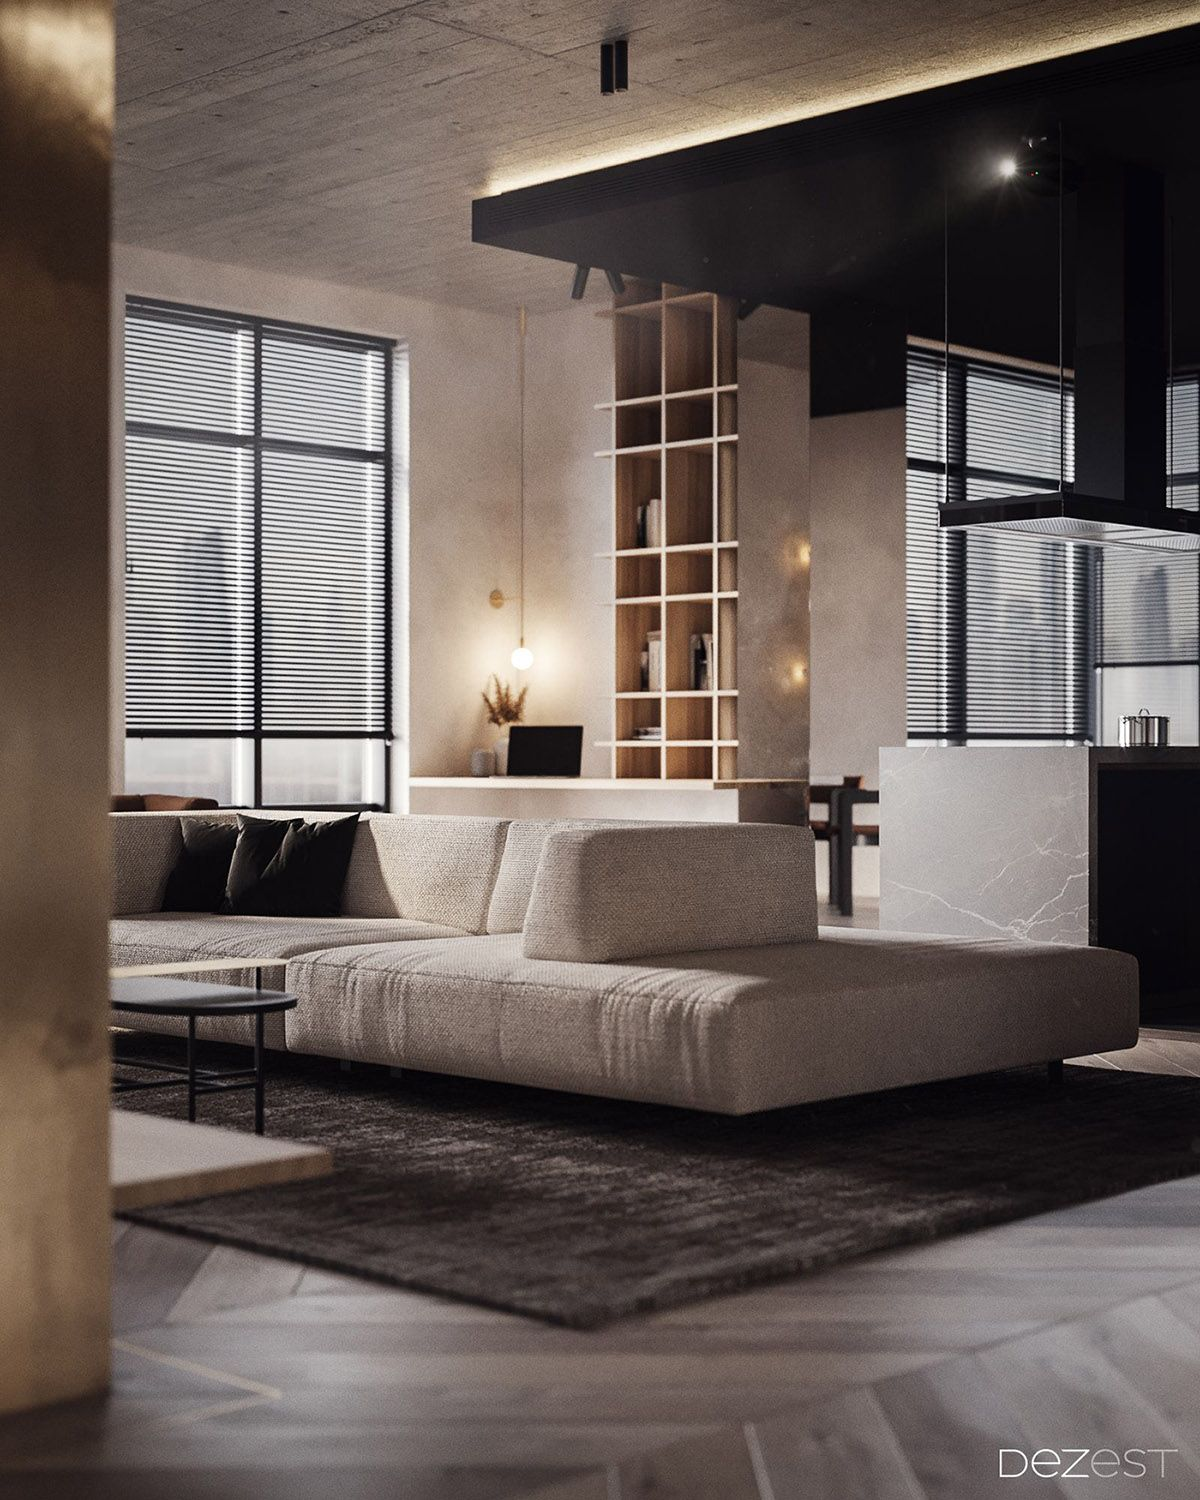 5 Living Rooms That Demonstrate Stylish Modern Design Trends: Dark, Warm & Welcoming Apartment